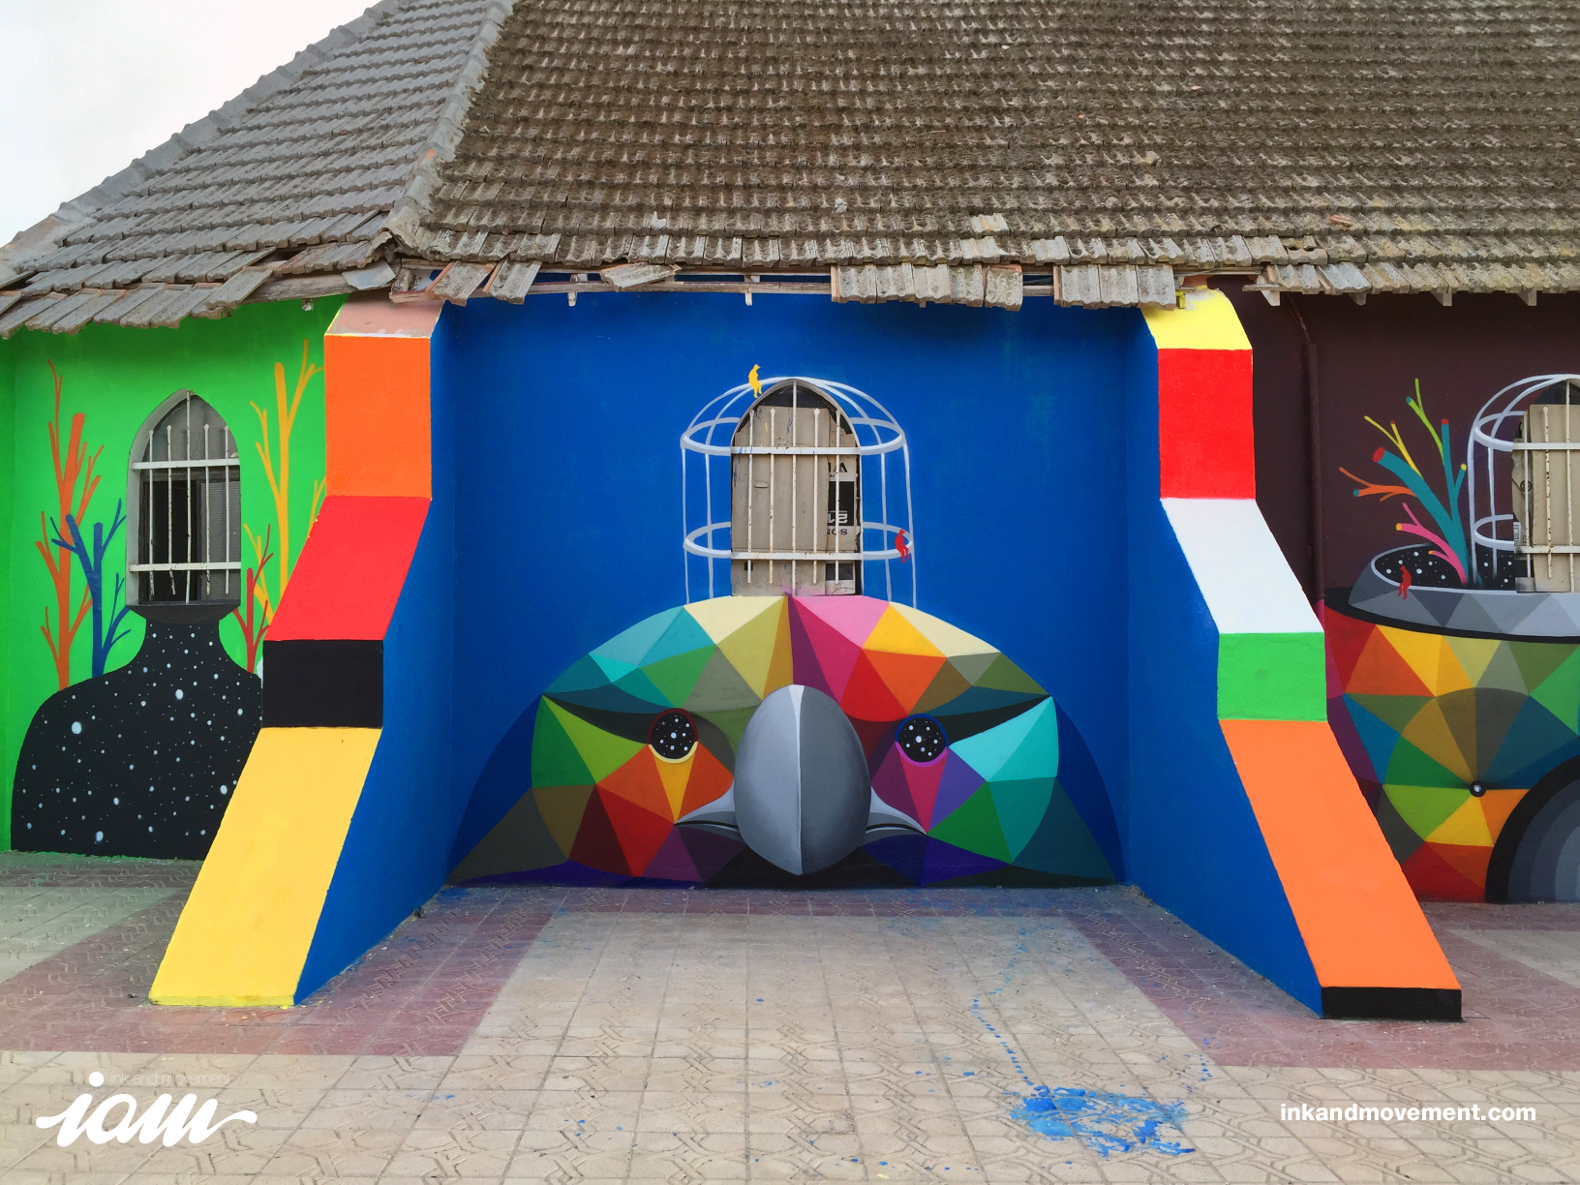 Okuda San Miguels Incredible Street Art Completely Transforms A - Spanish street artist transforms building facades into amazing artworks